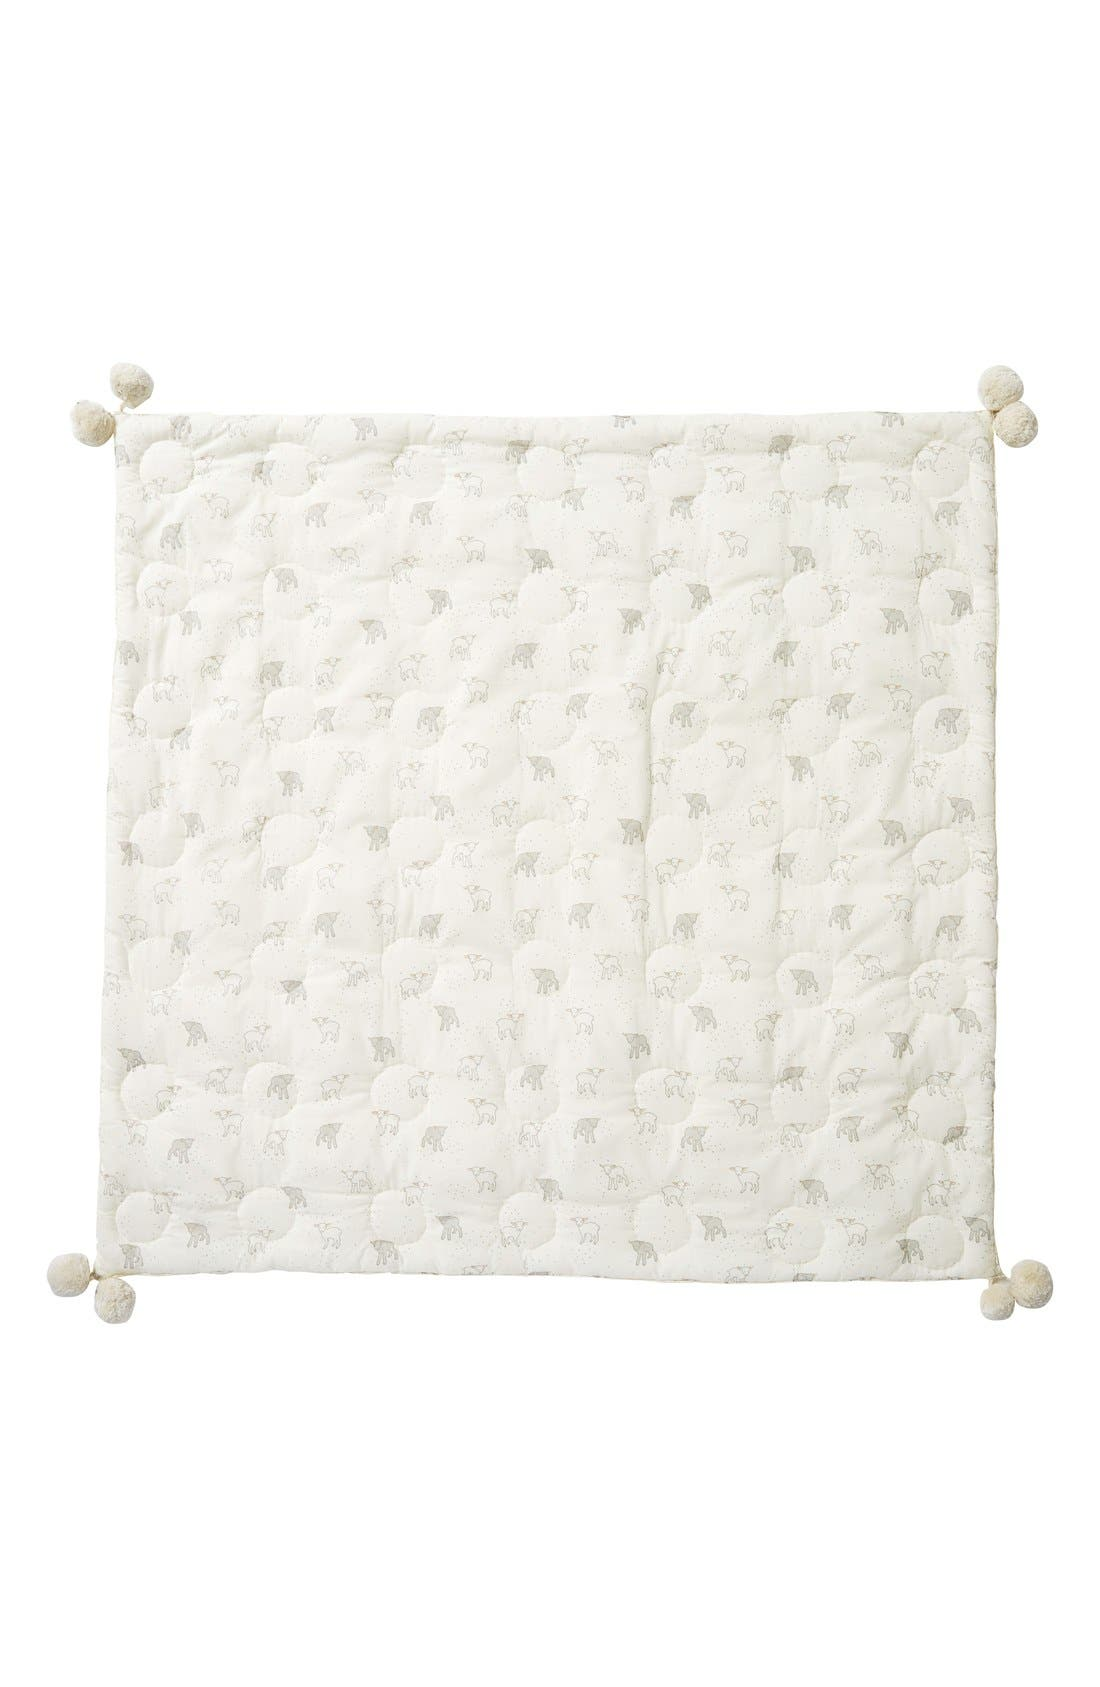 Alternate Image 1 Selected - Petit Pehr 'Little Lamb' Baby Blanket